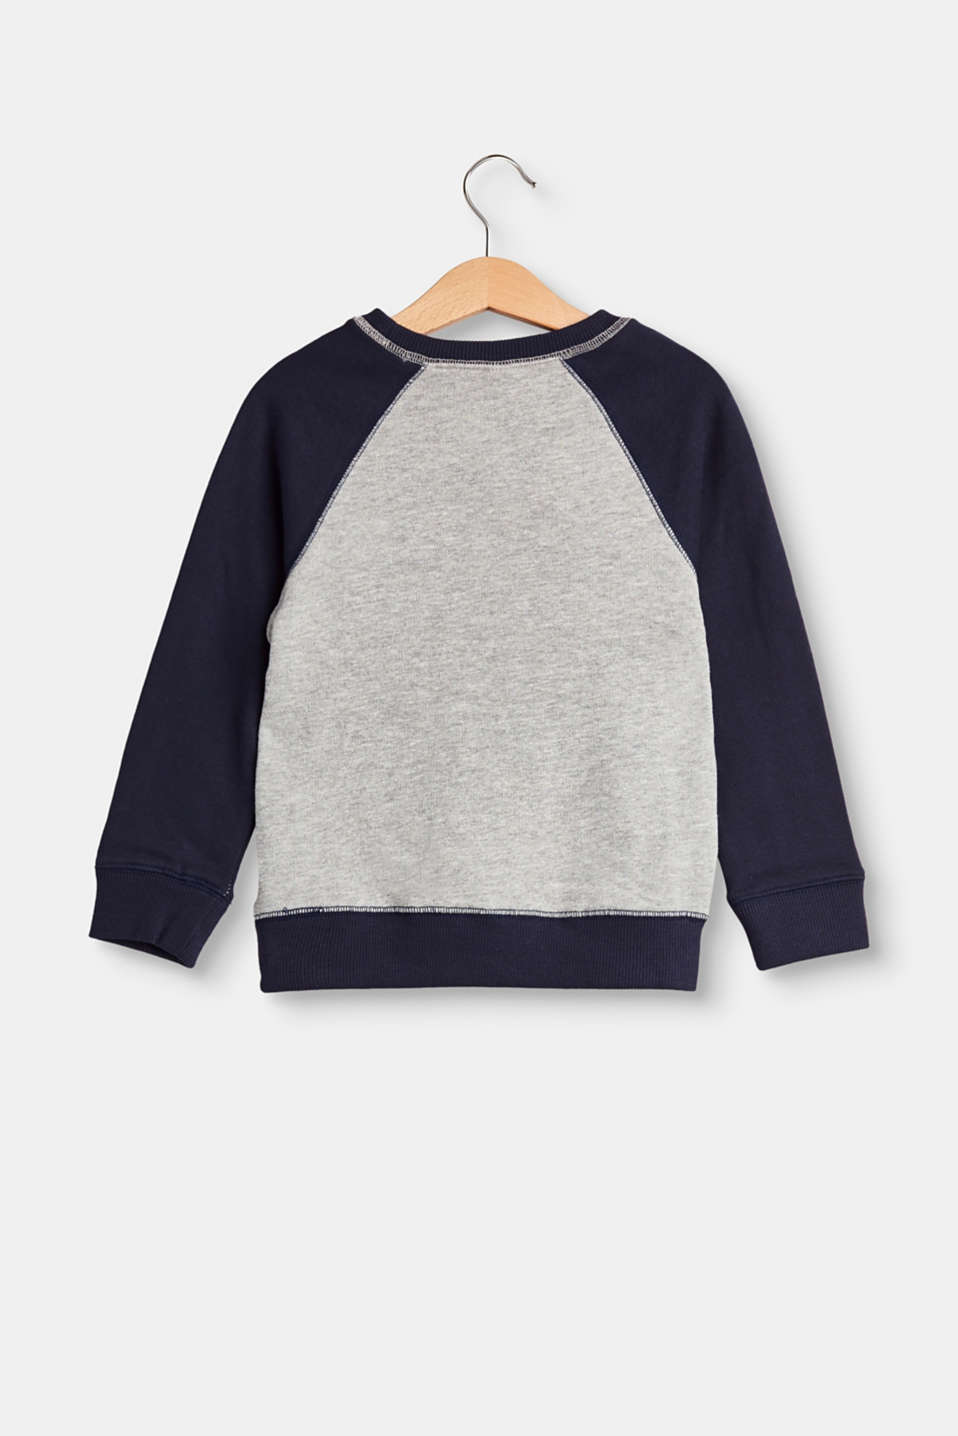 Sweatshirt with a soft flock print